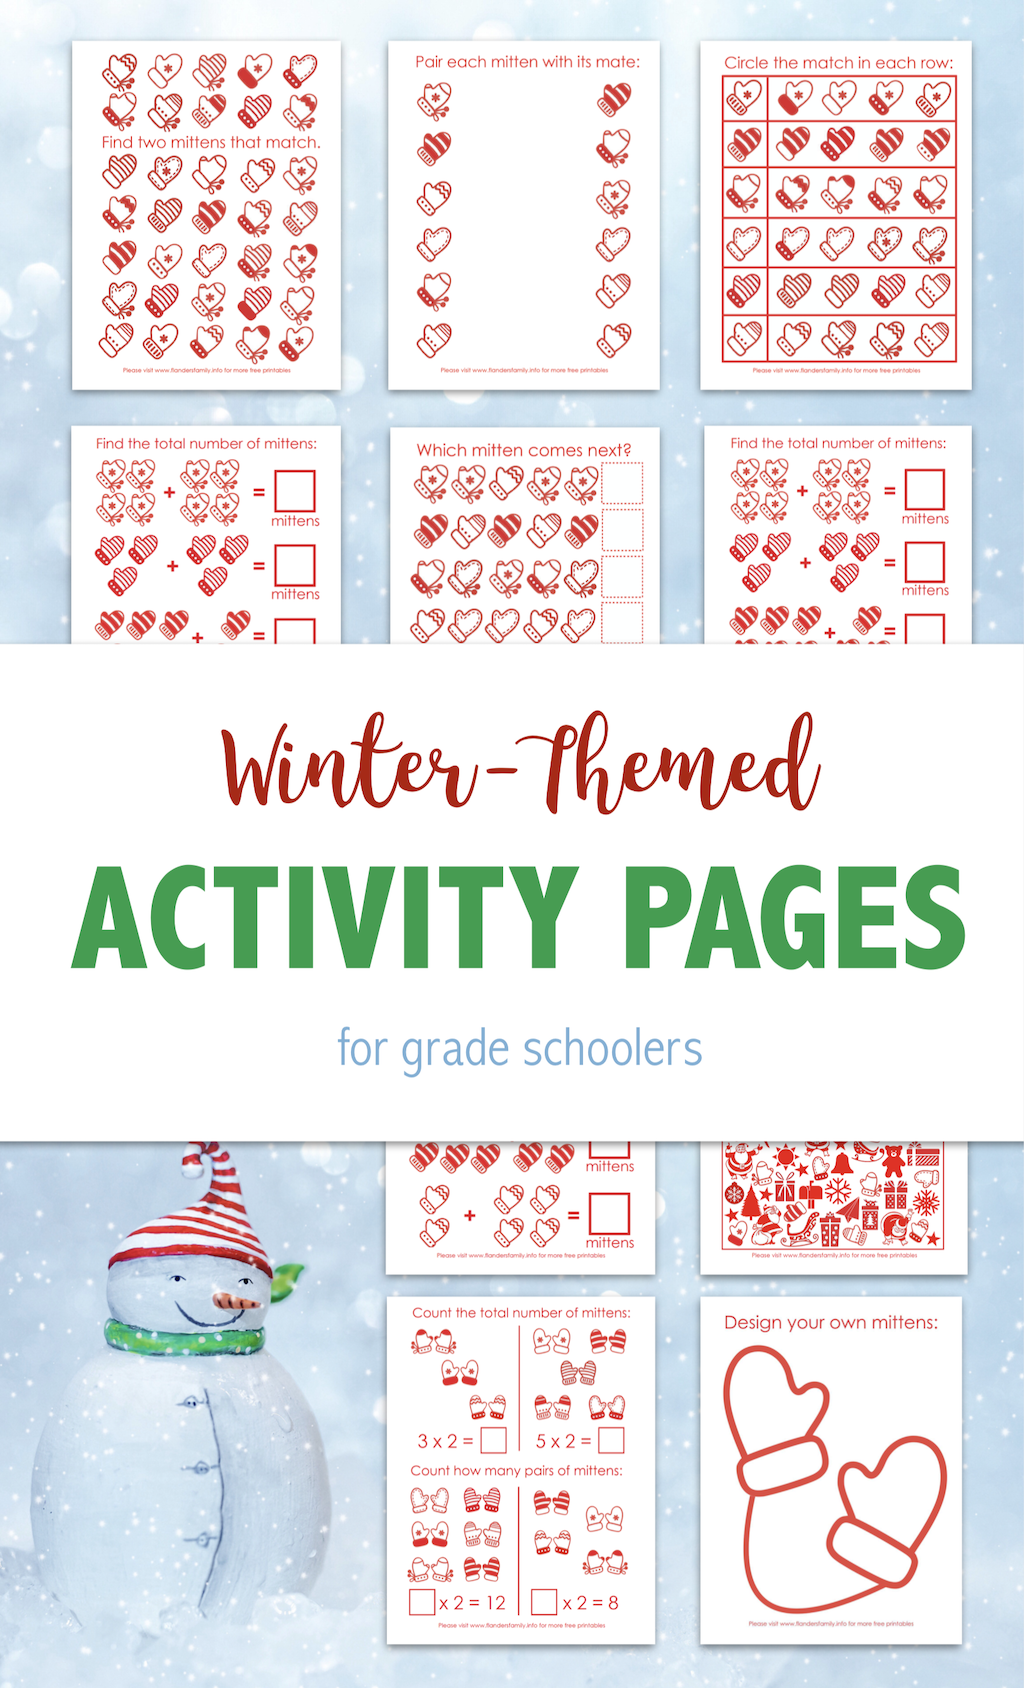 Winter-Themed Activity Pages for Young Children